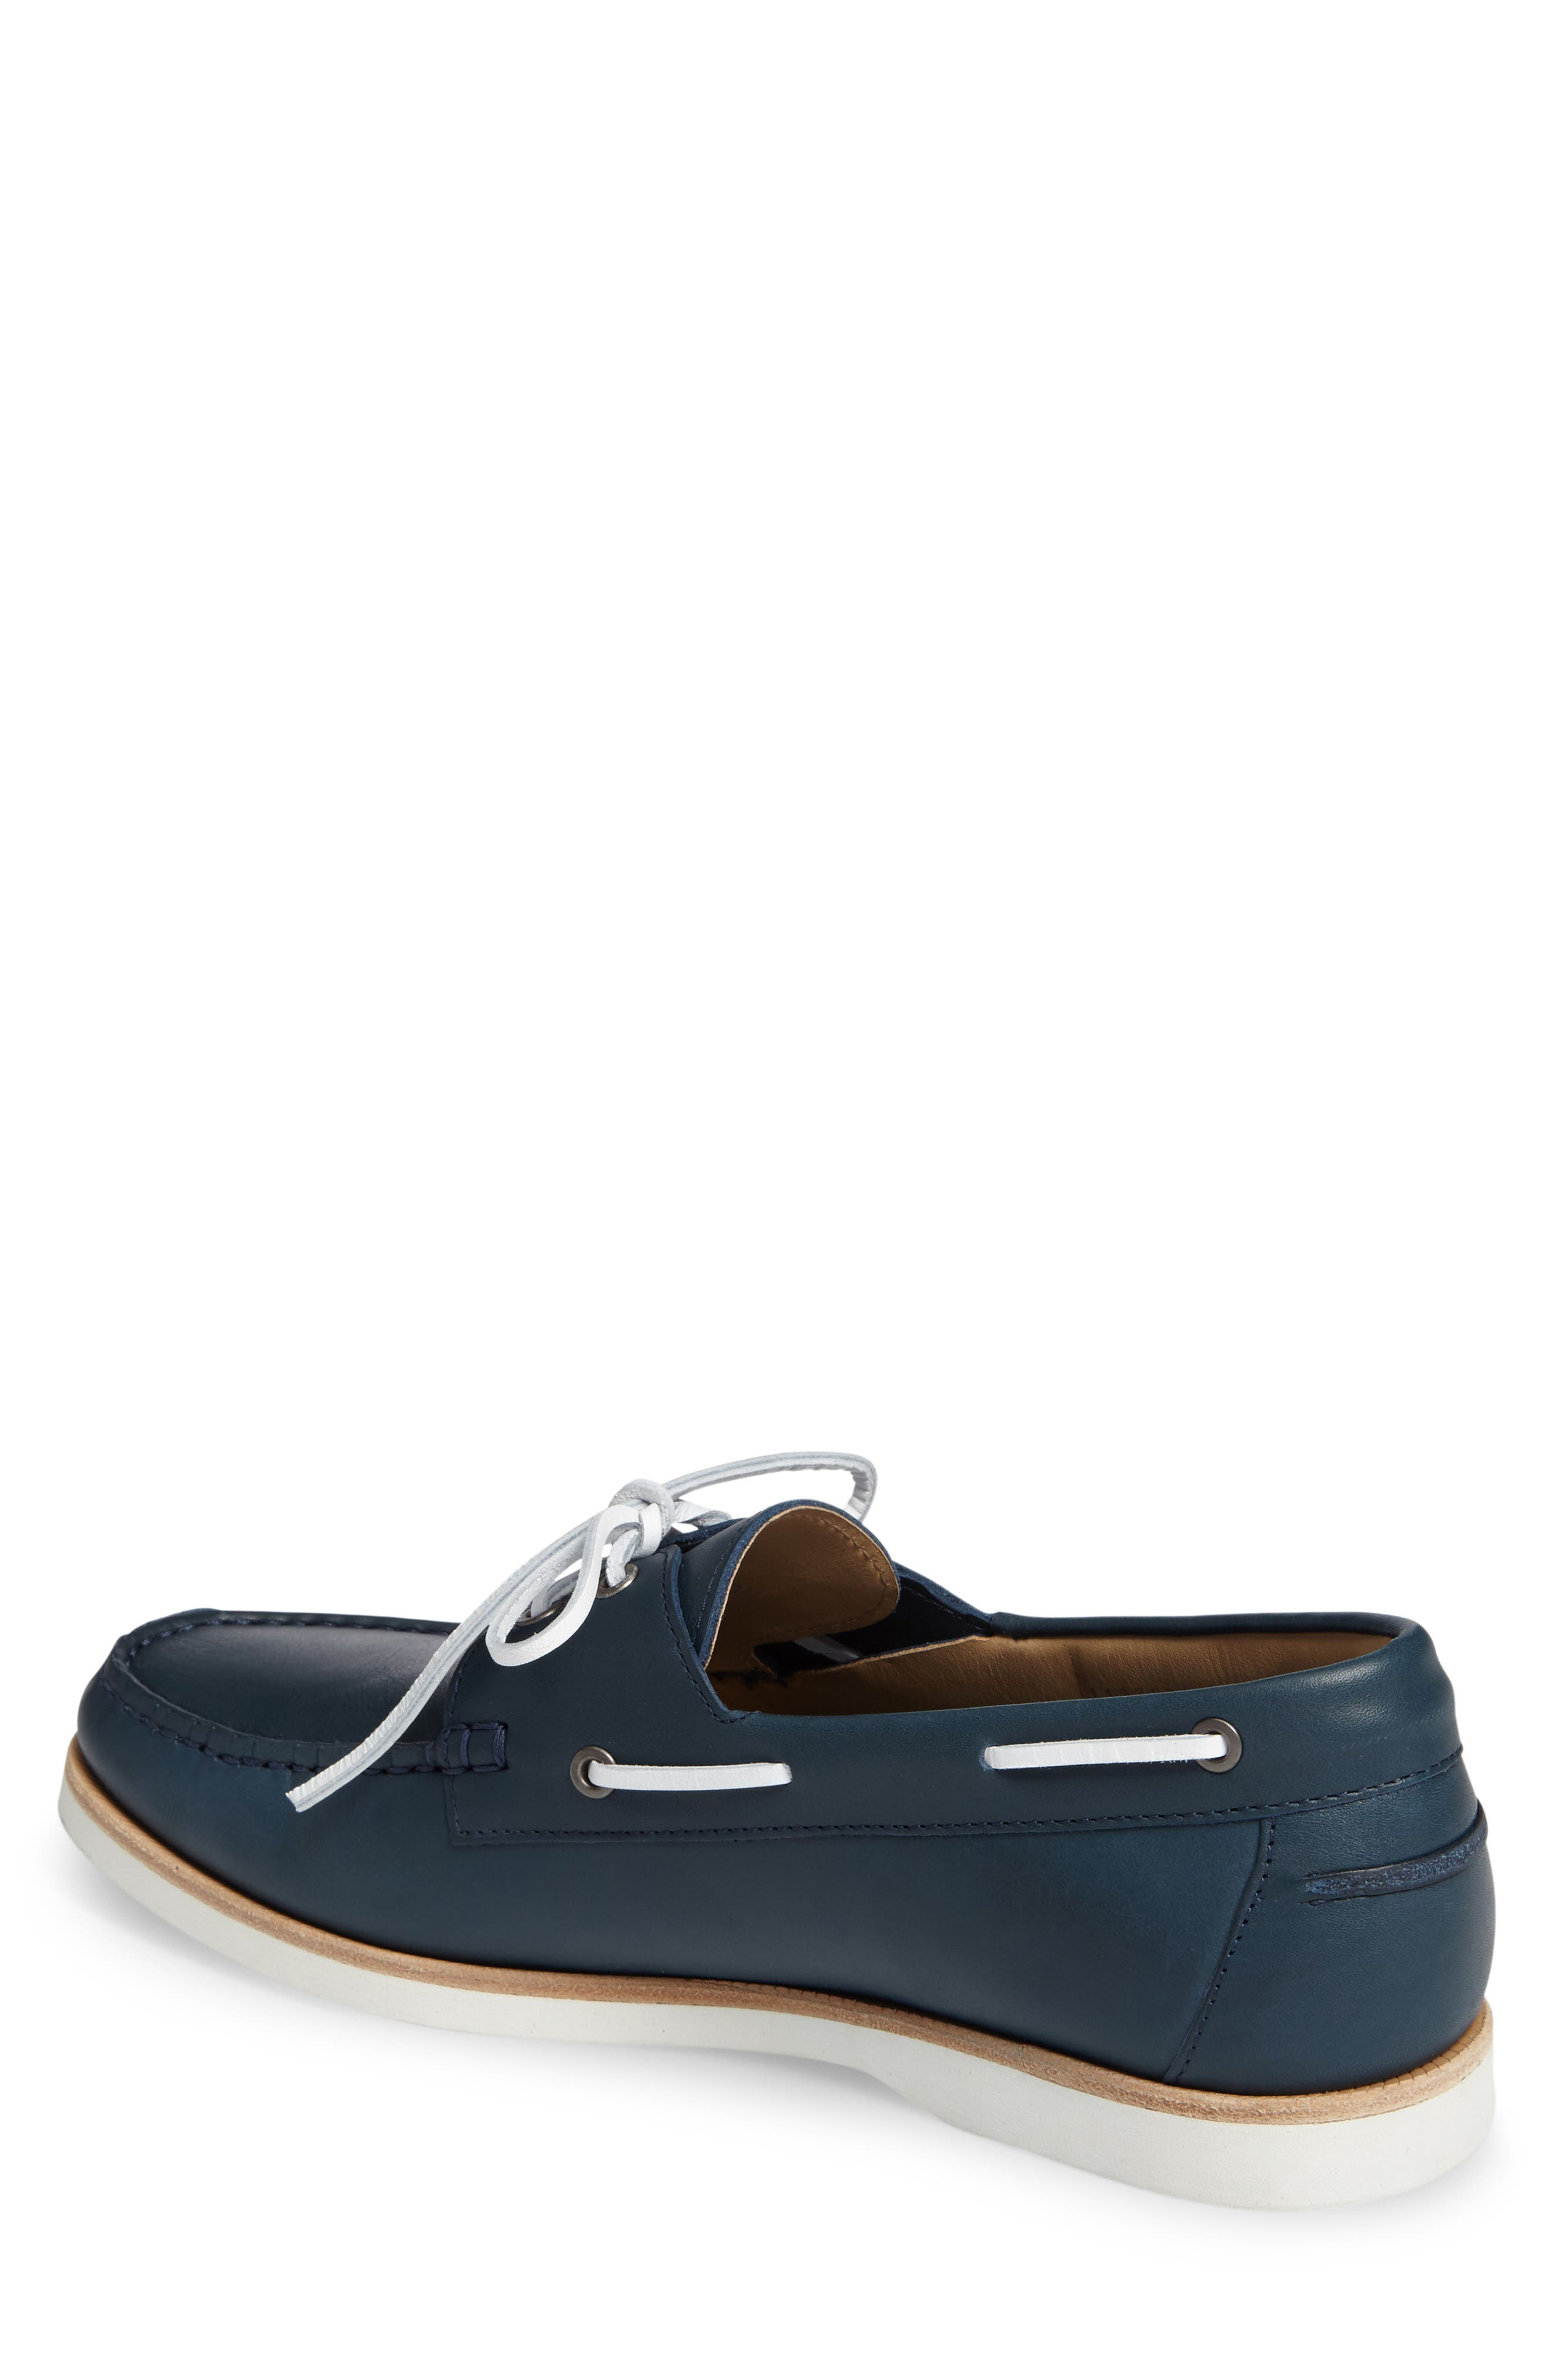 Cooper Boat Shoe,                             Alternate thumbnail 2, color,                             Navy Leather